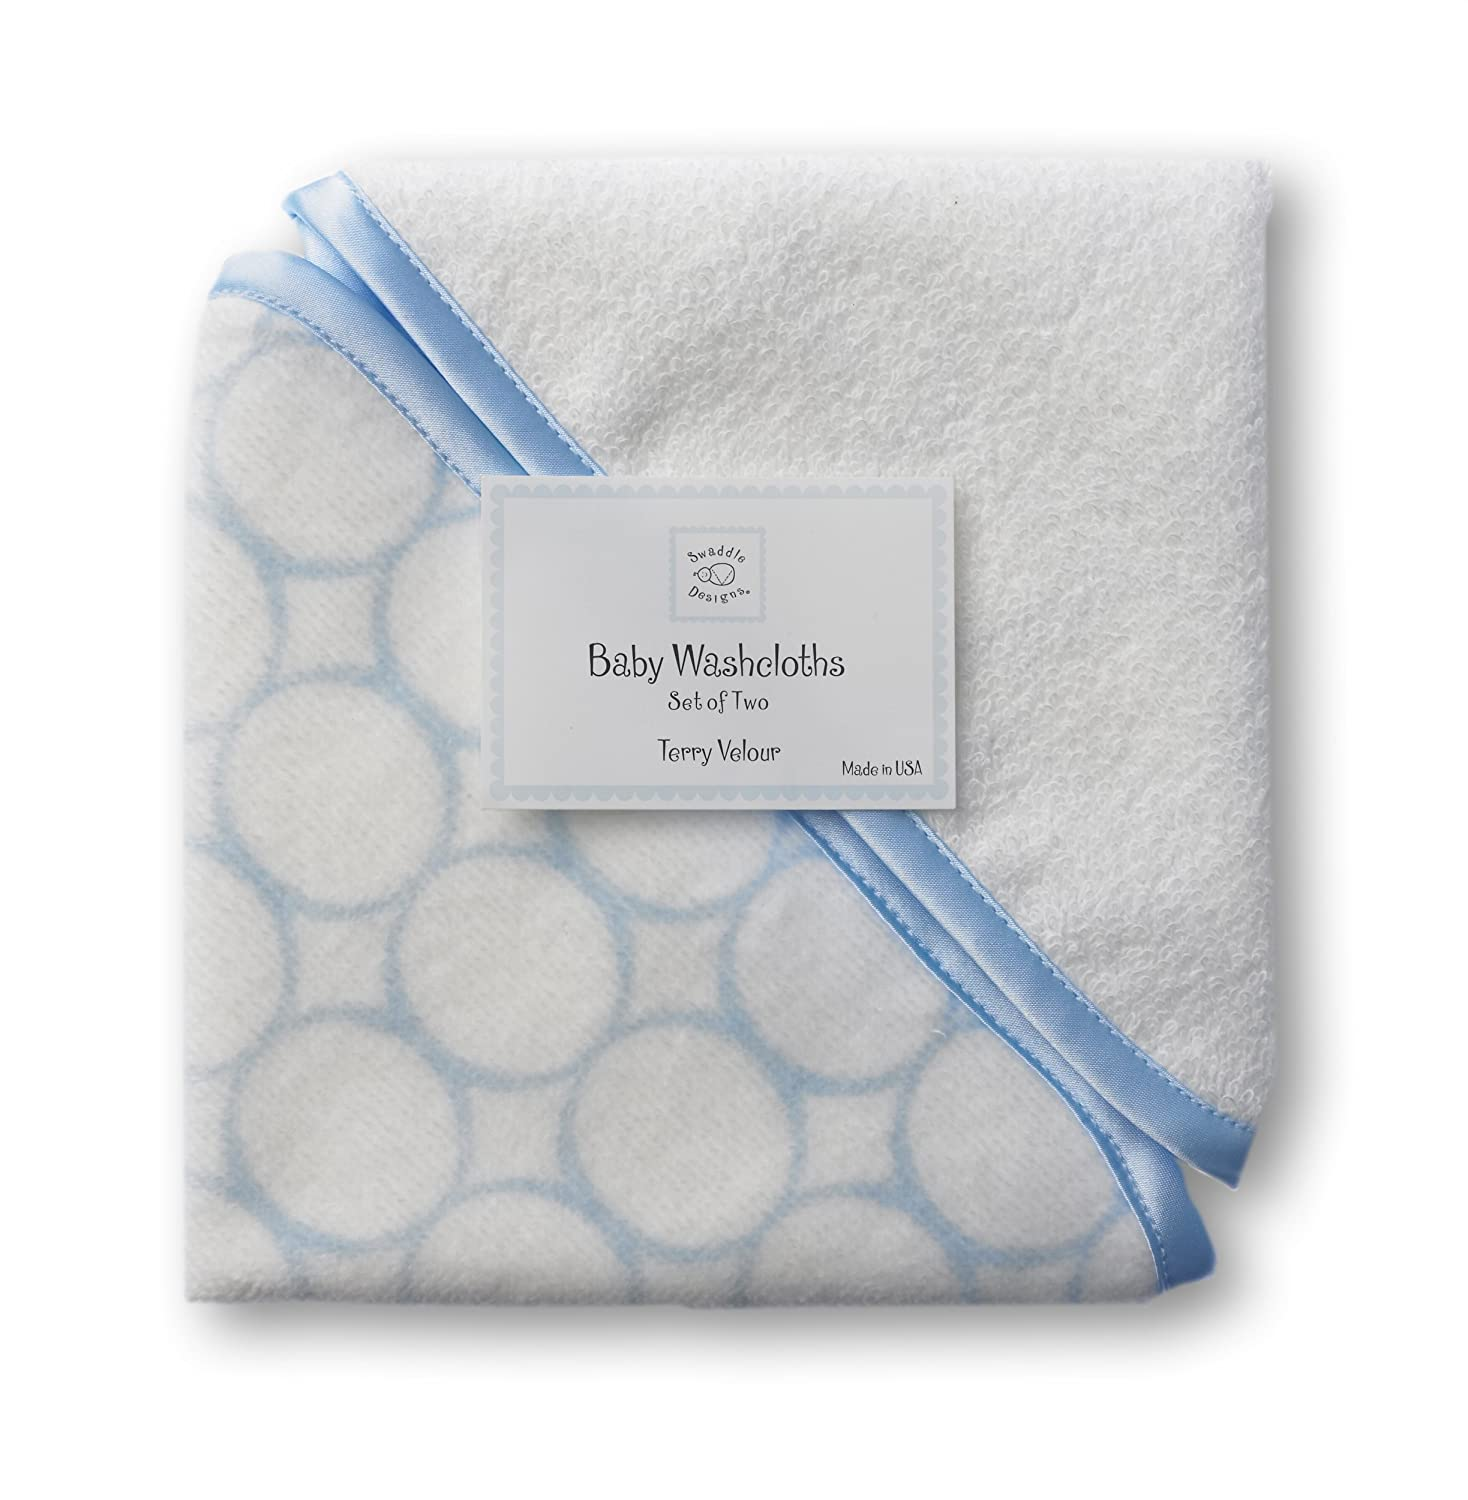 SwaddleDesigns Organic Cotton Baby Washcloths, Mod Circles (Set of 2 in Pastel Blue) SD-075PB